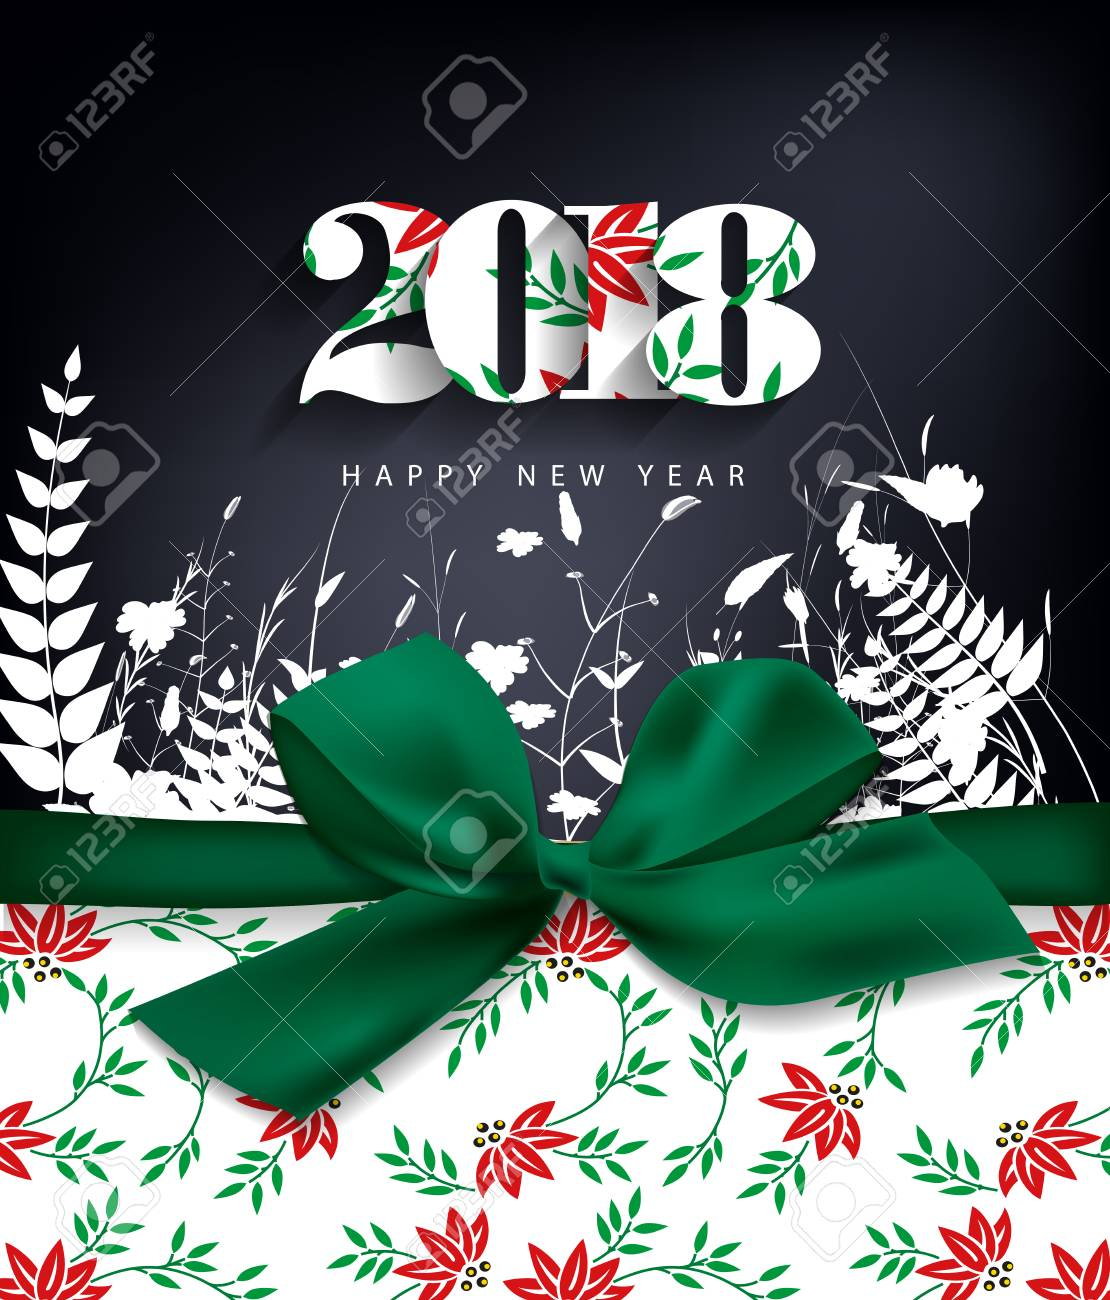 Happy new year 2018 greeting card and merry christmas royalty free happy new year 2018 greeting card and merry christmas stock vector 87858676 kristyandbryce Choice Image